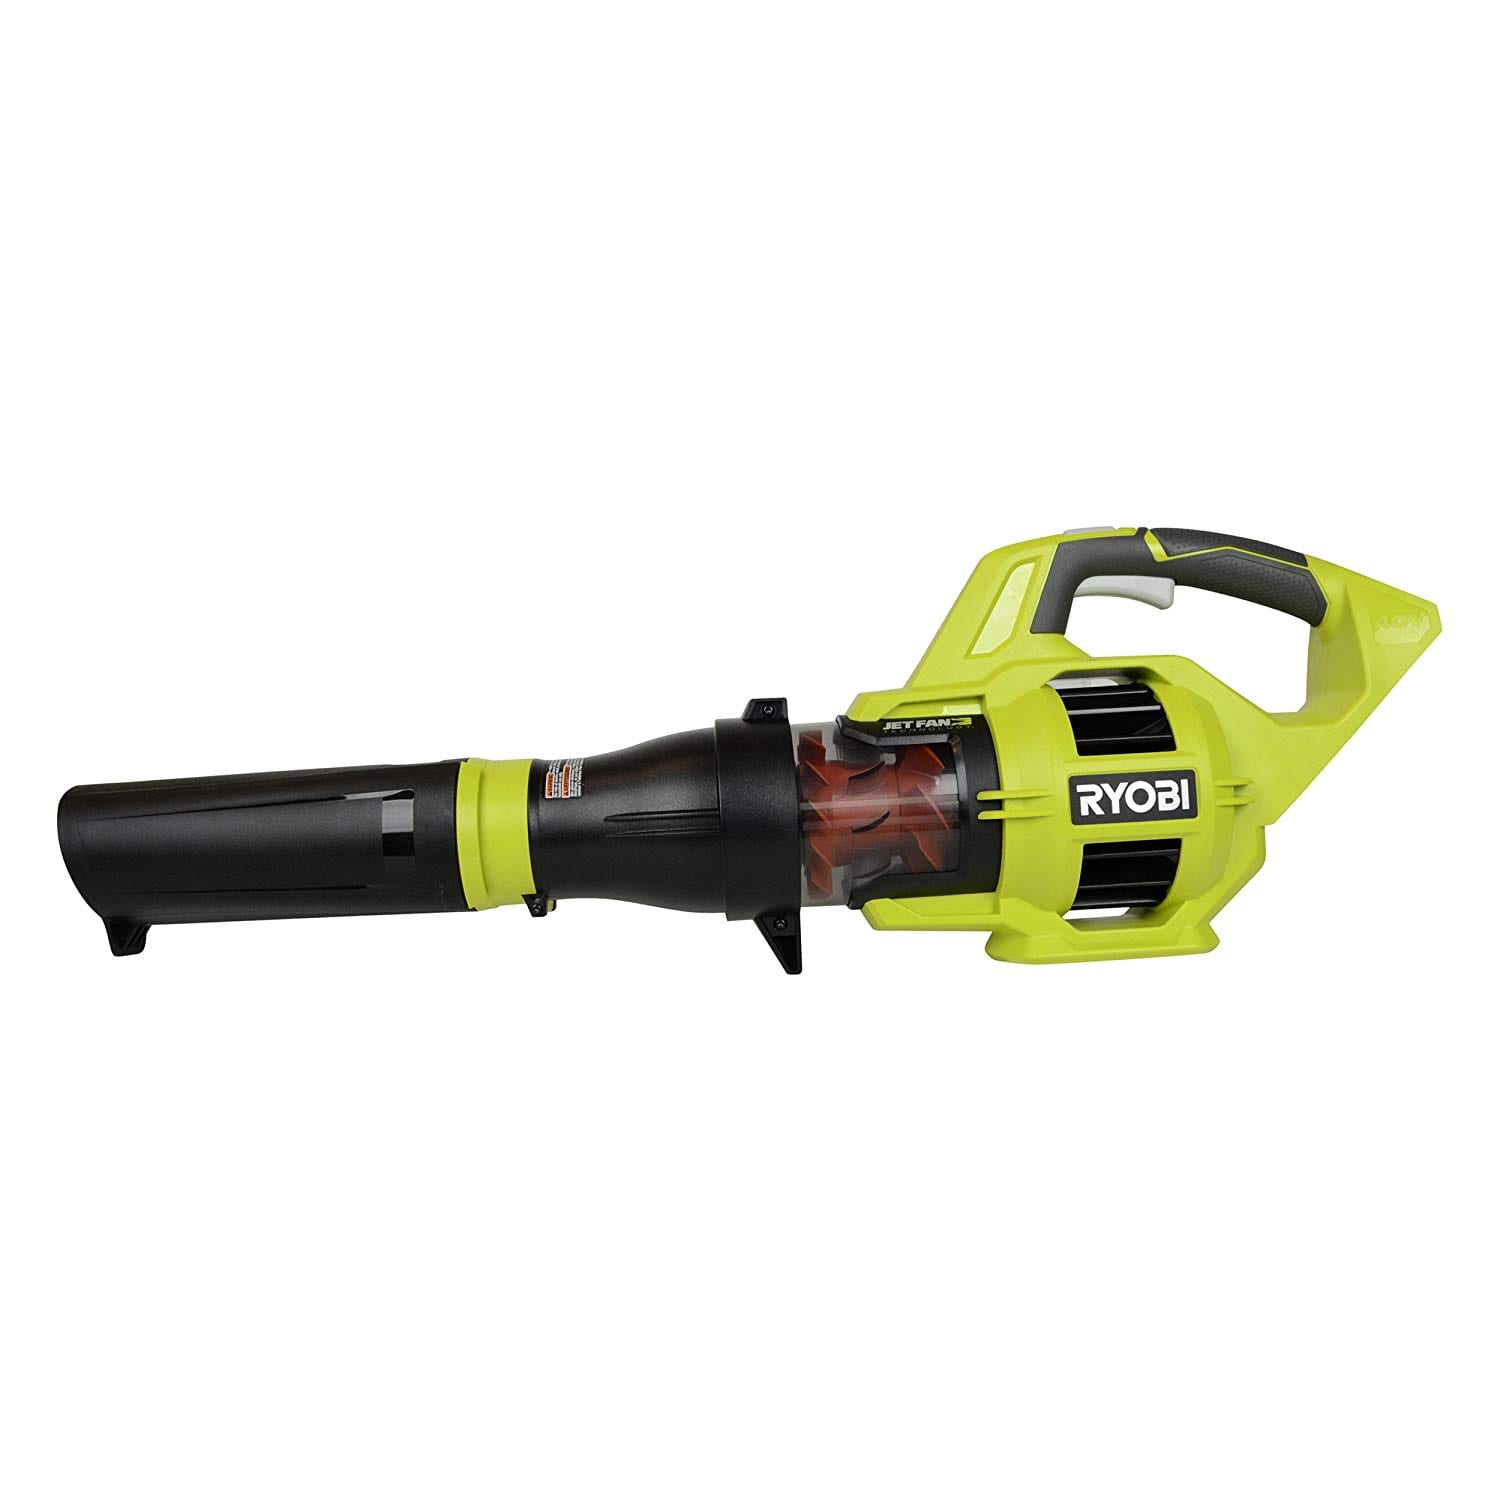 Ryobi RY40403 110 MPH Jet Fan Blowers with 40V Lithium-Ion Battery